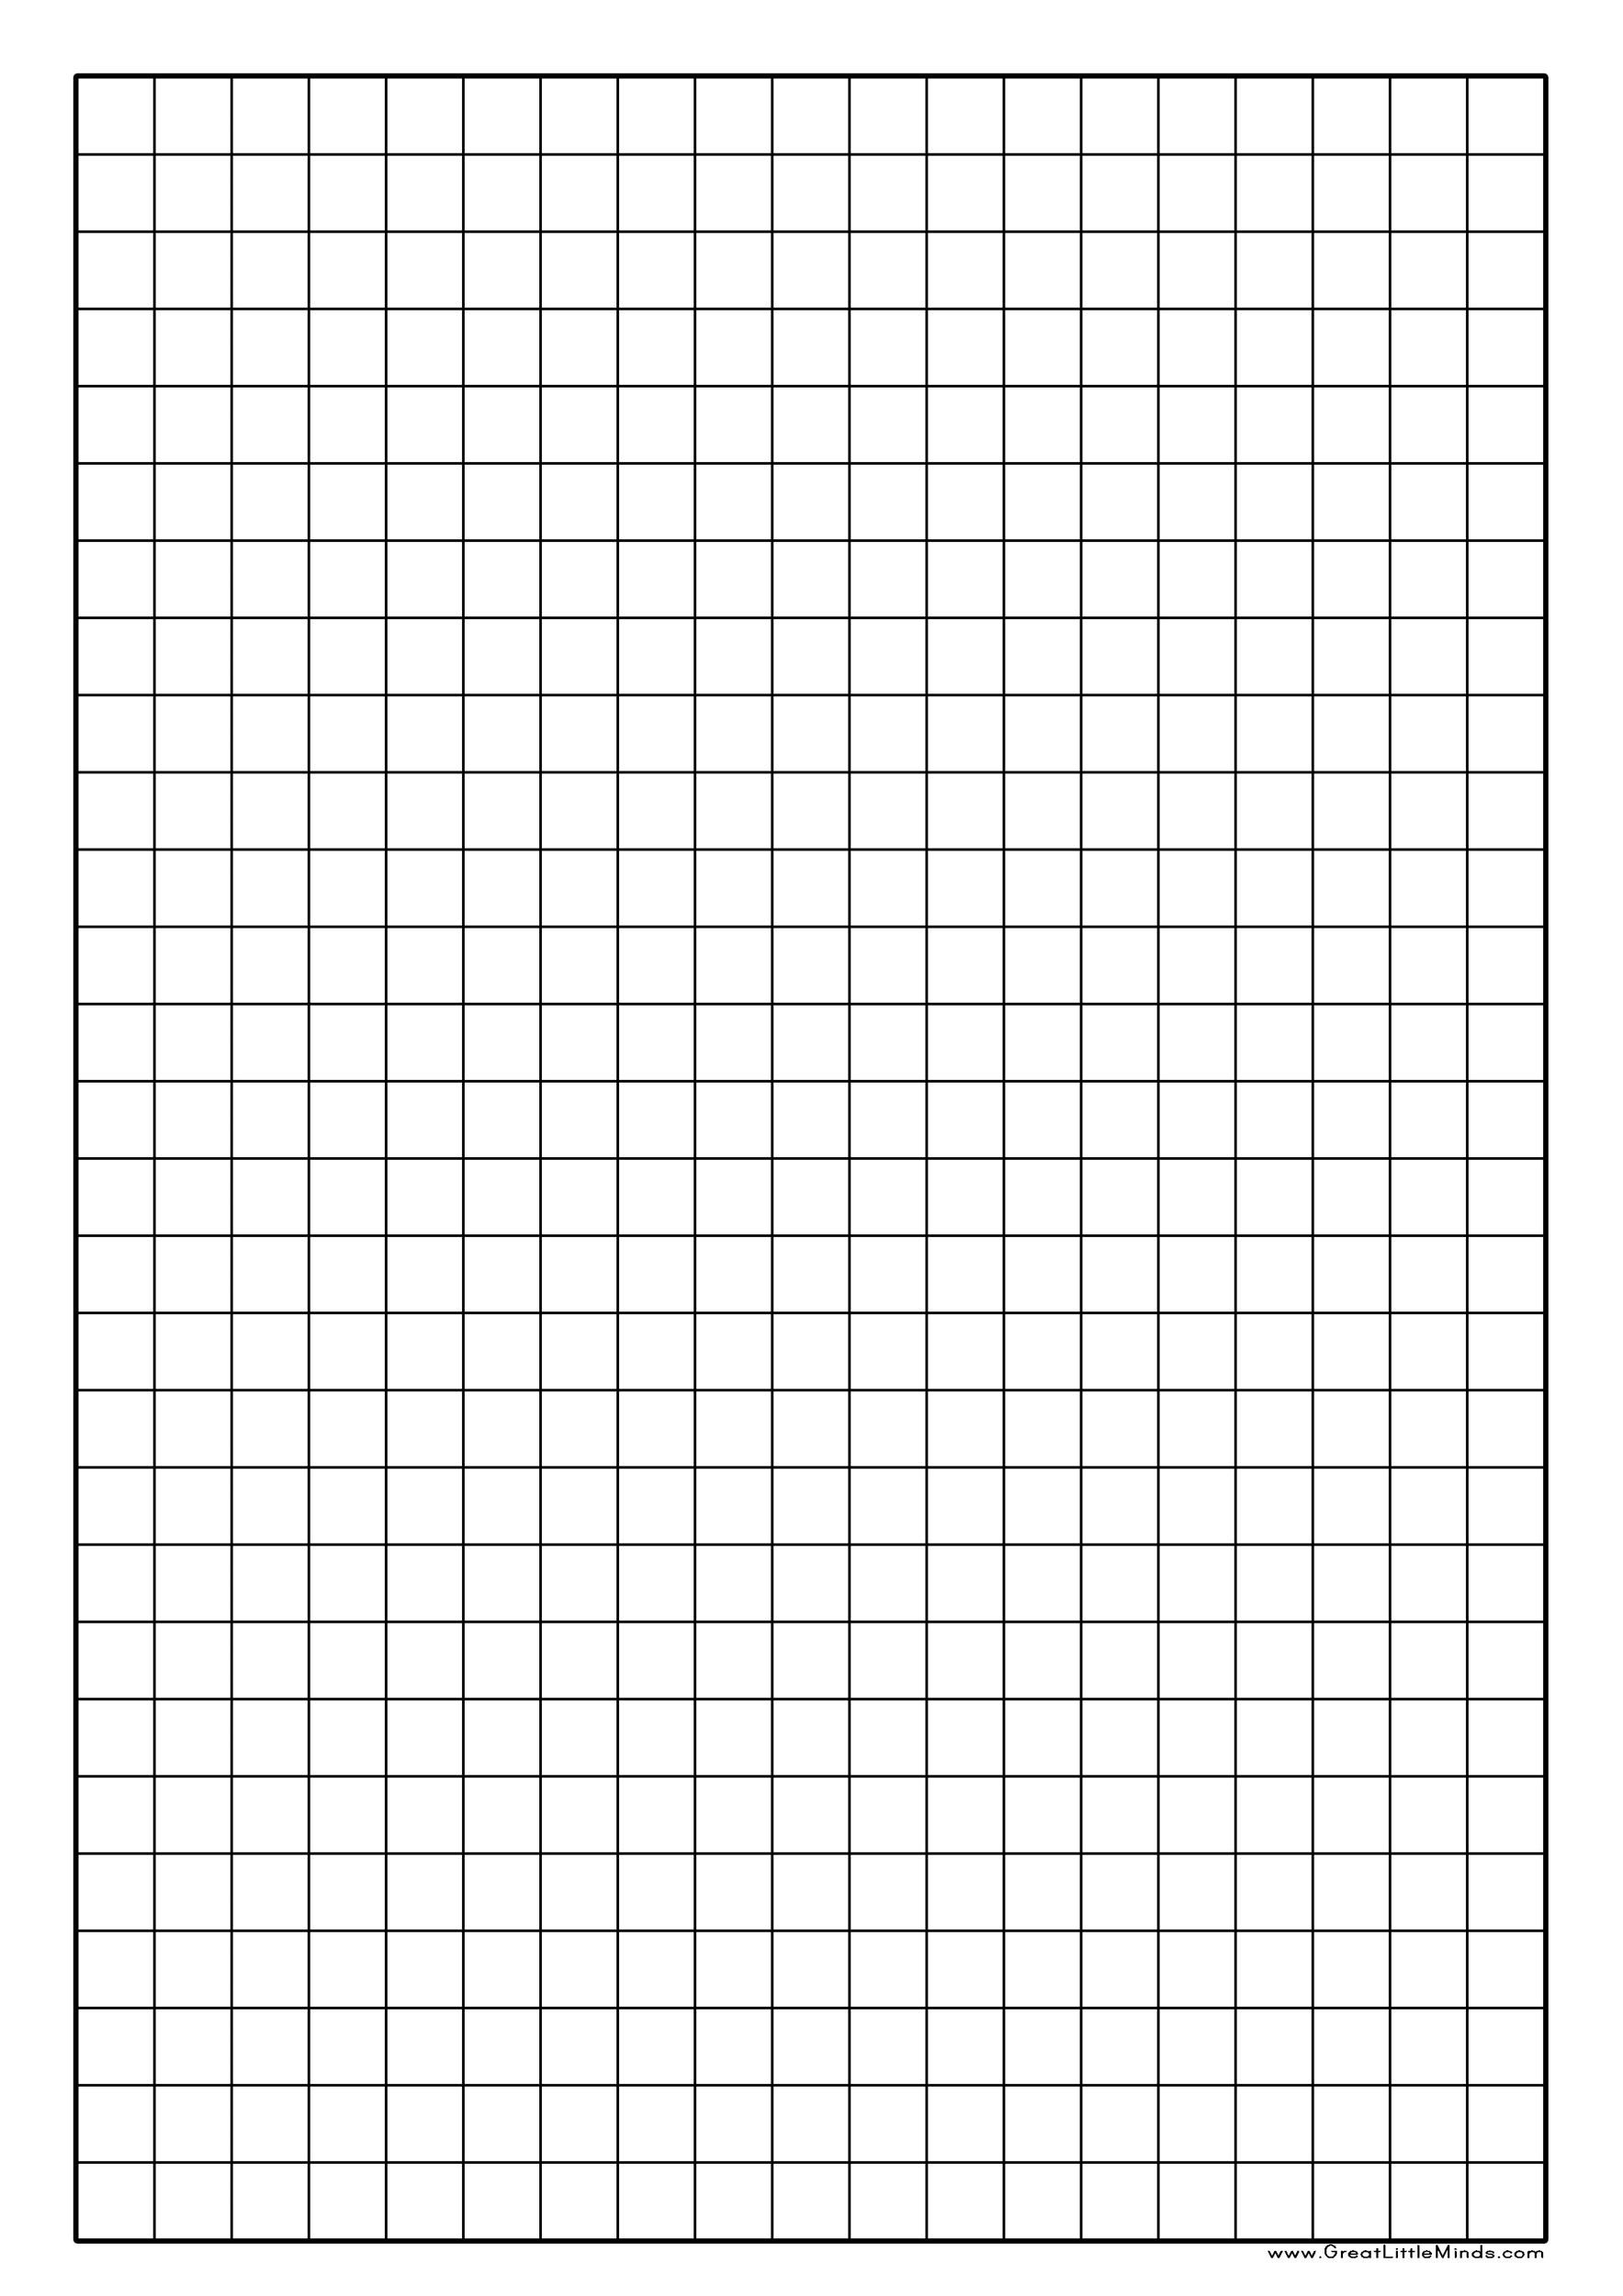 worksheet Graph Paper Image 30 free printable graph paper templates word pdf template lab 15